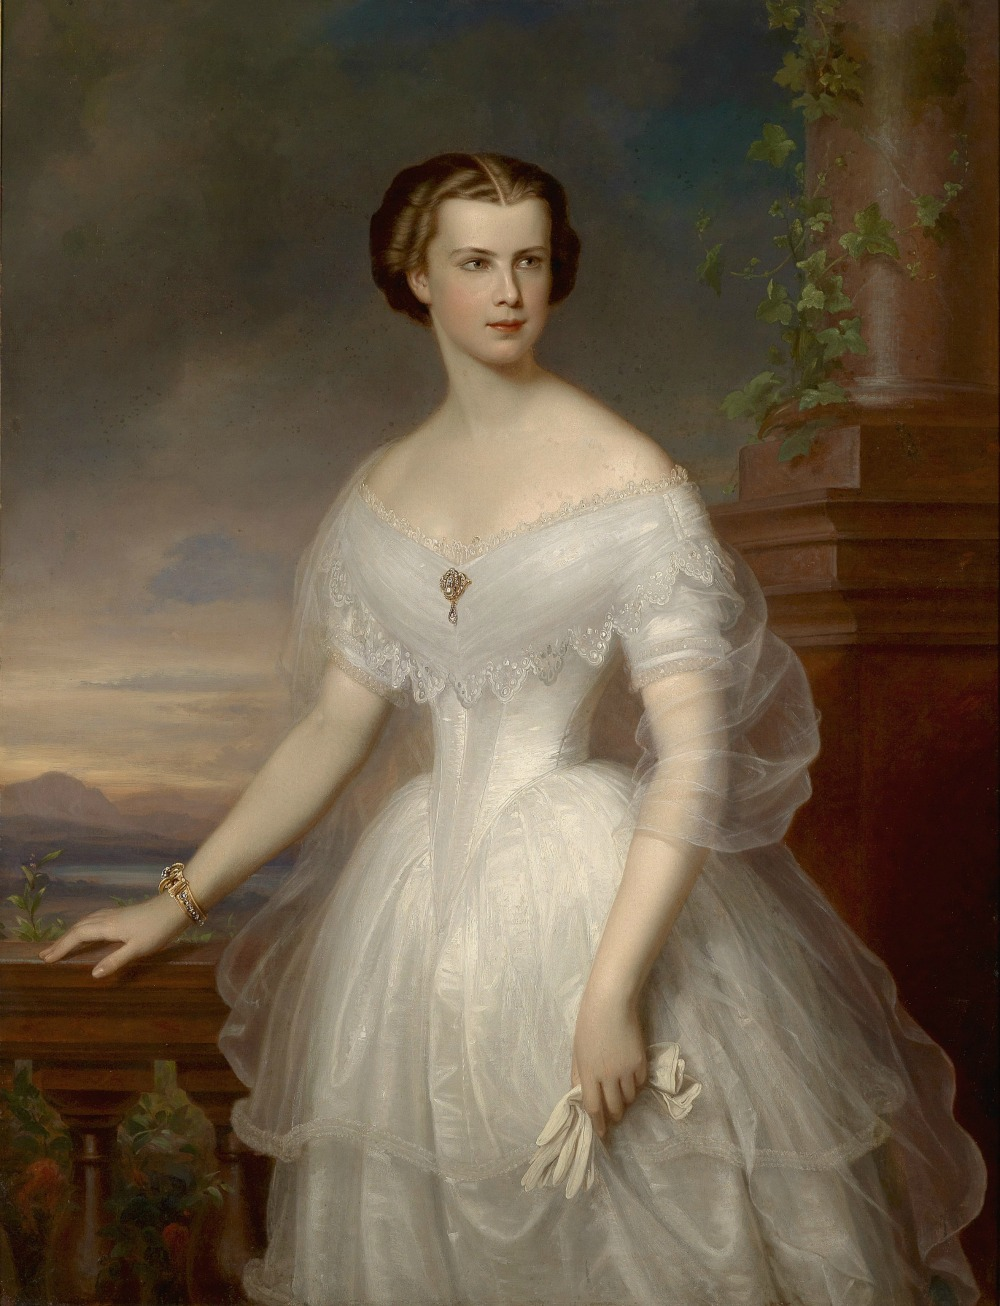 Portrait of Empress Elisabeth of Austria by Franz Schrotzberg, 1853.